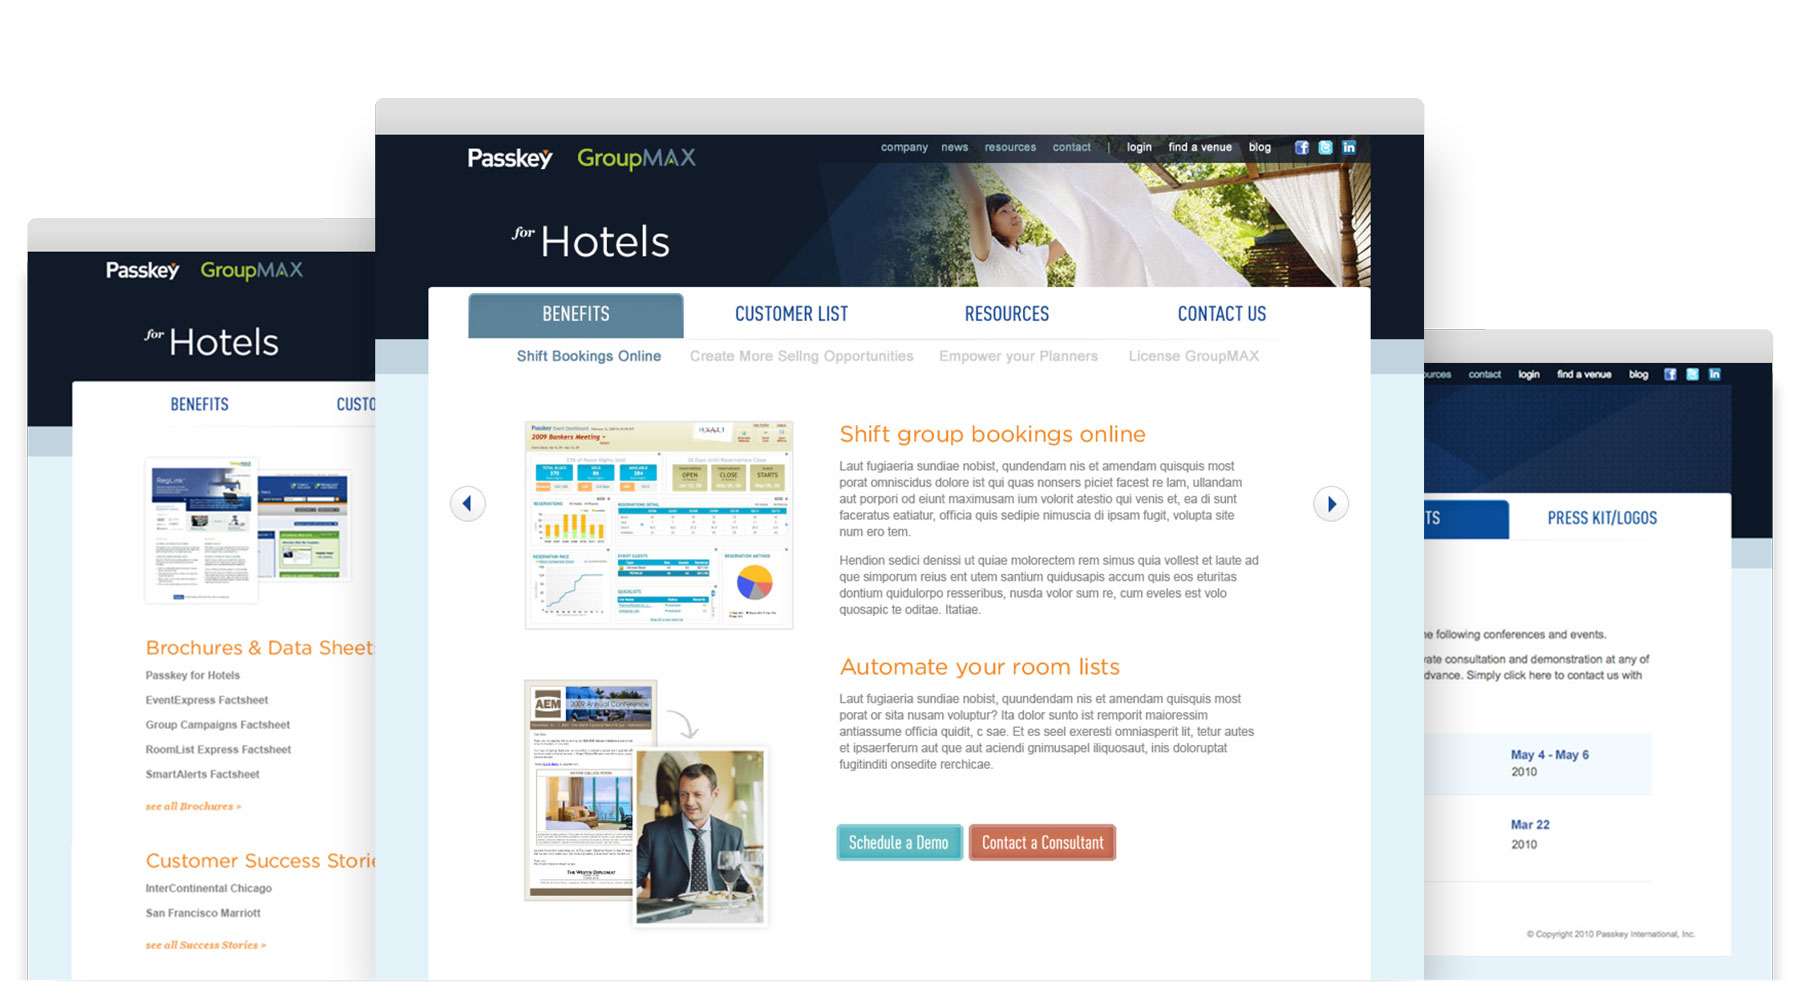 Passkey website interior pages